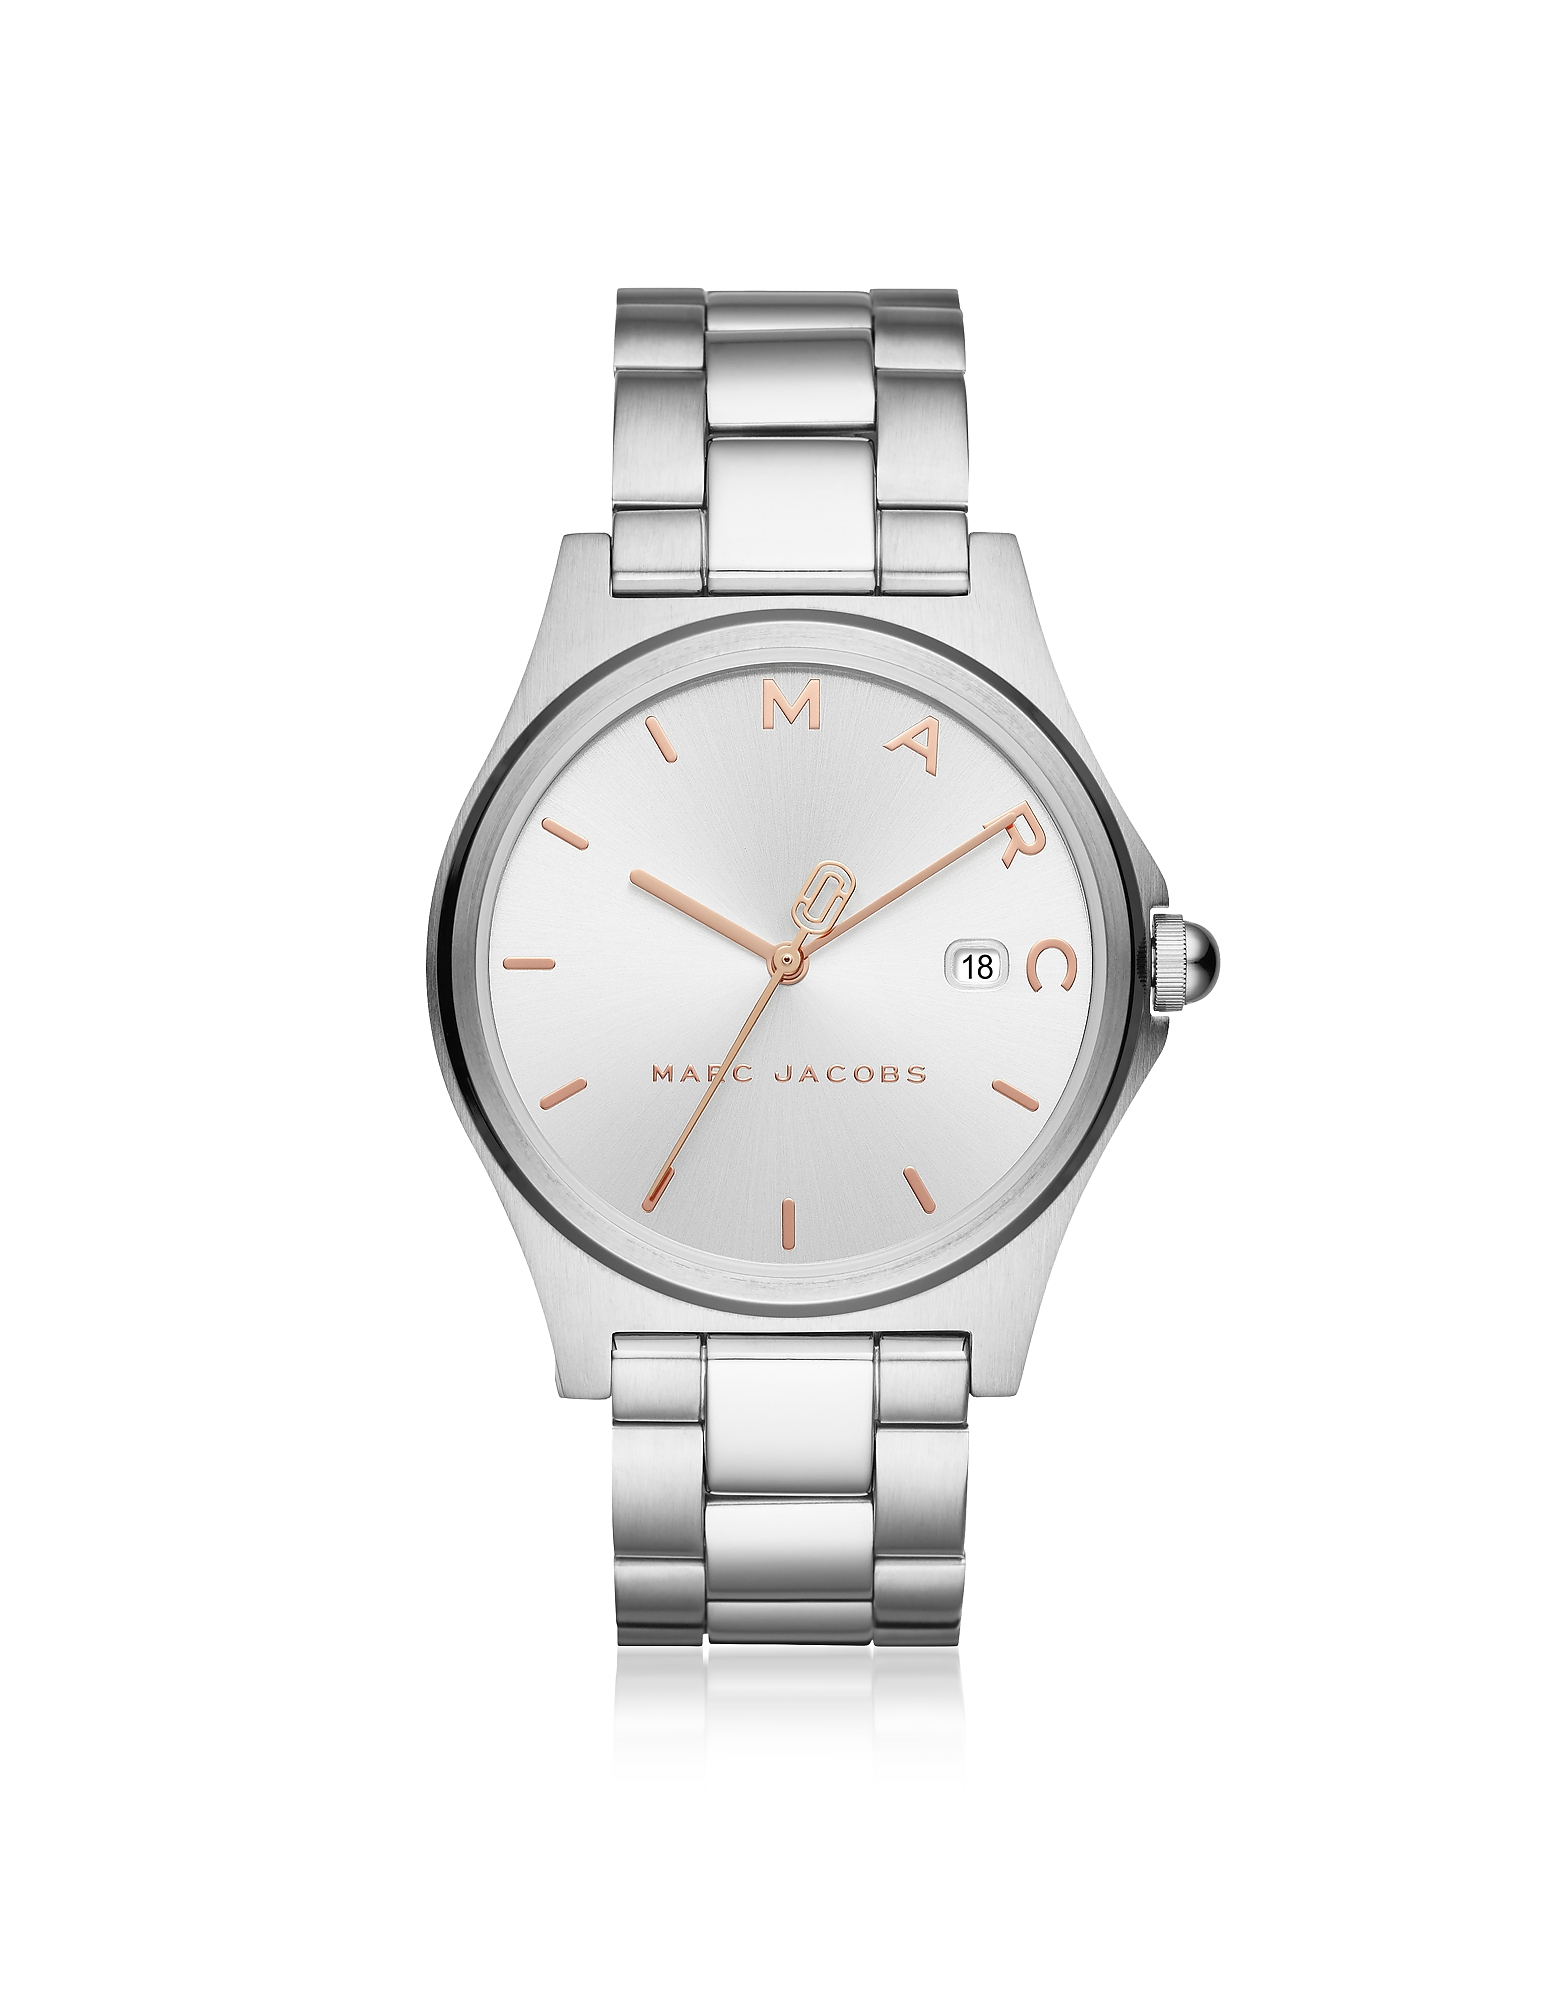 Henry Silver Tone Women's Watch. Henry Silver Tone Watch is a timeless piece with a modern appeal that will lend a classic touch to a